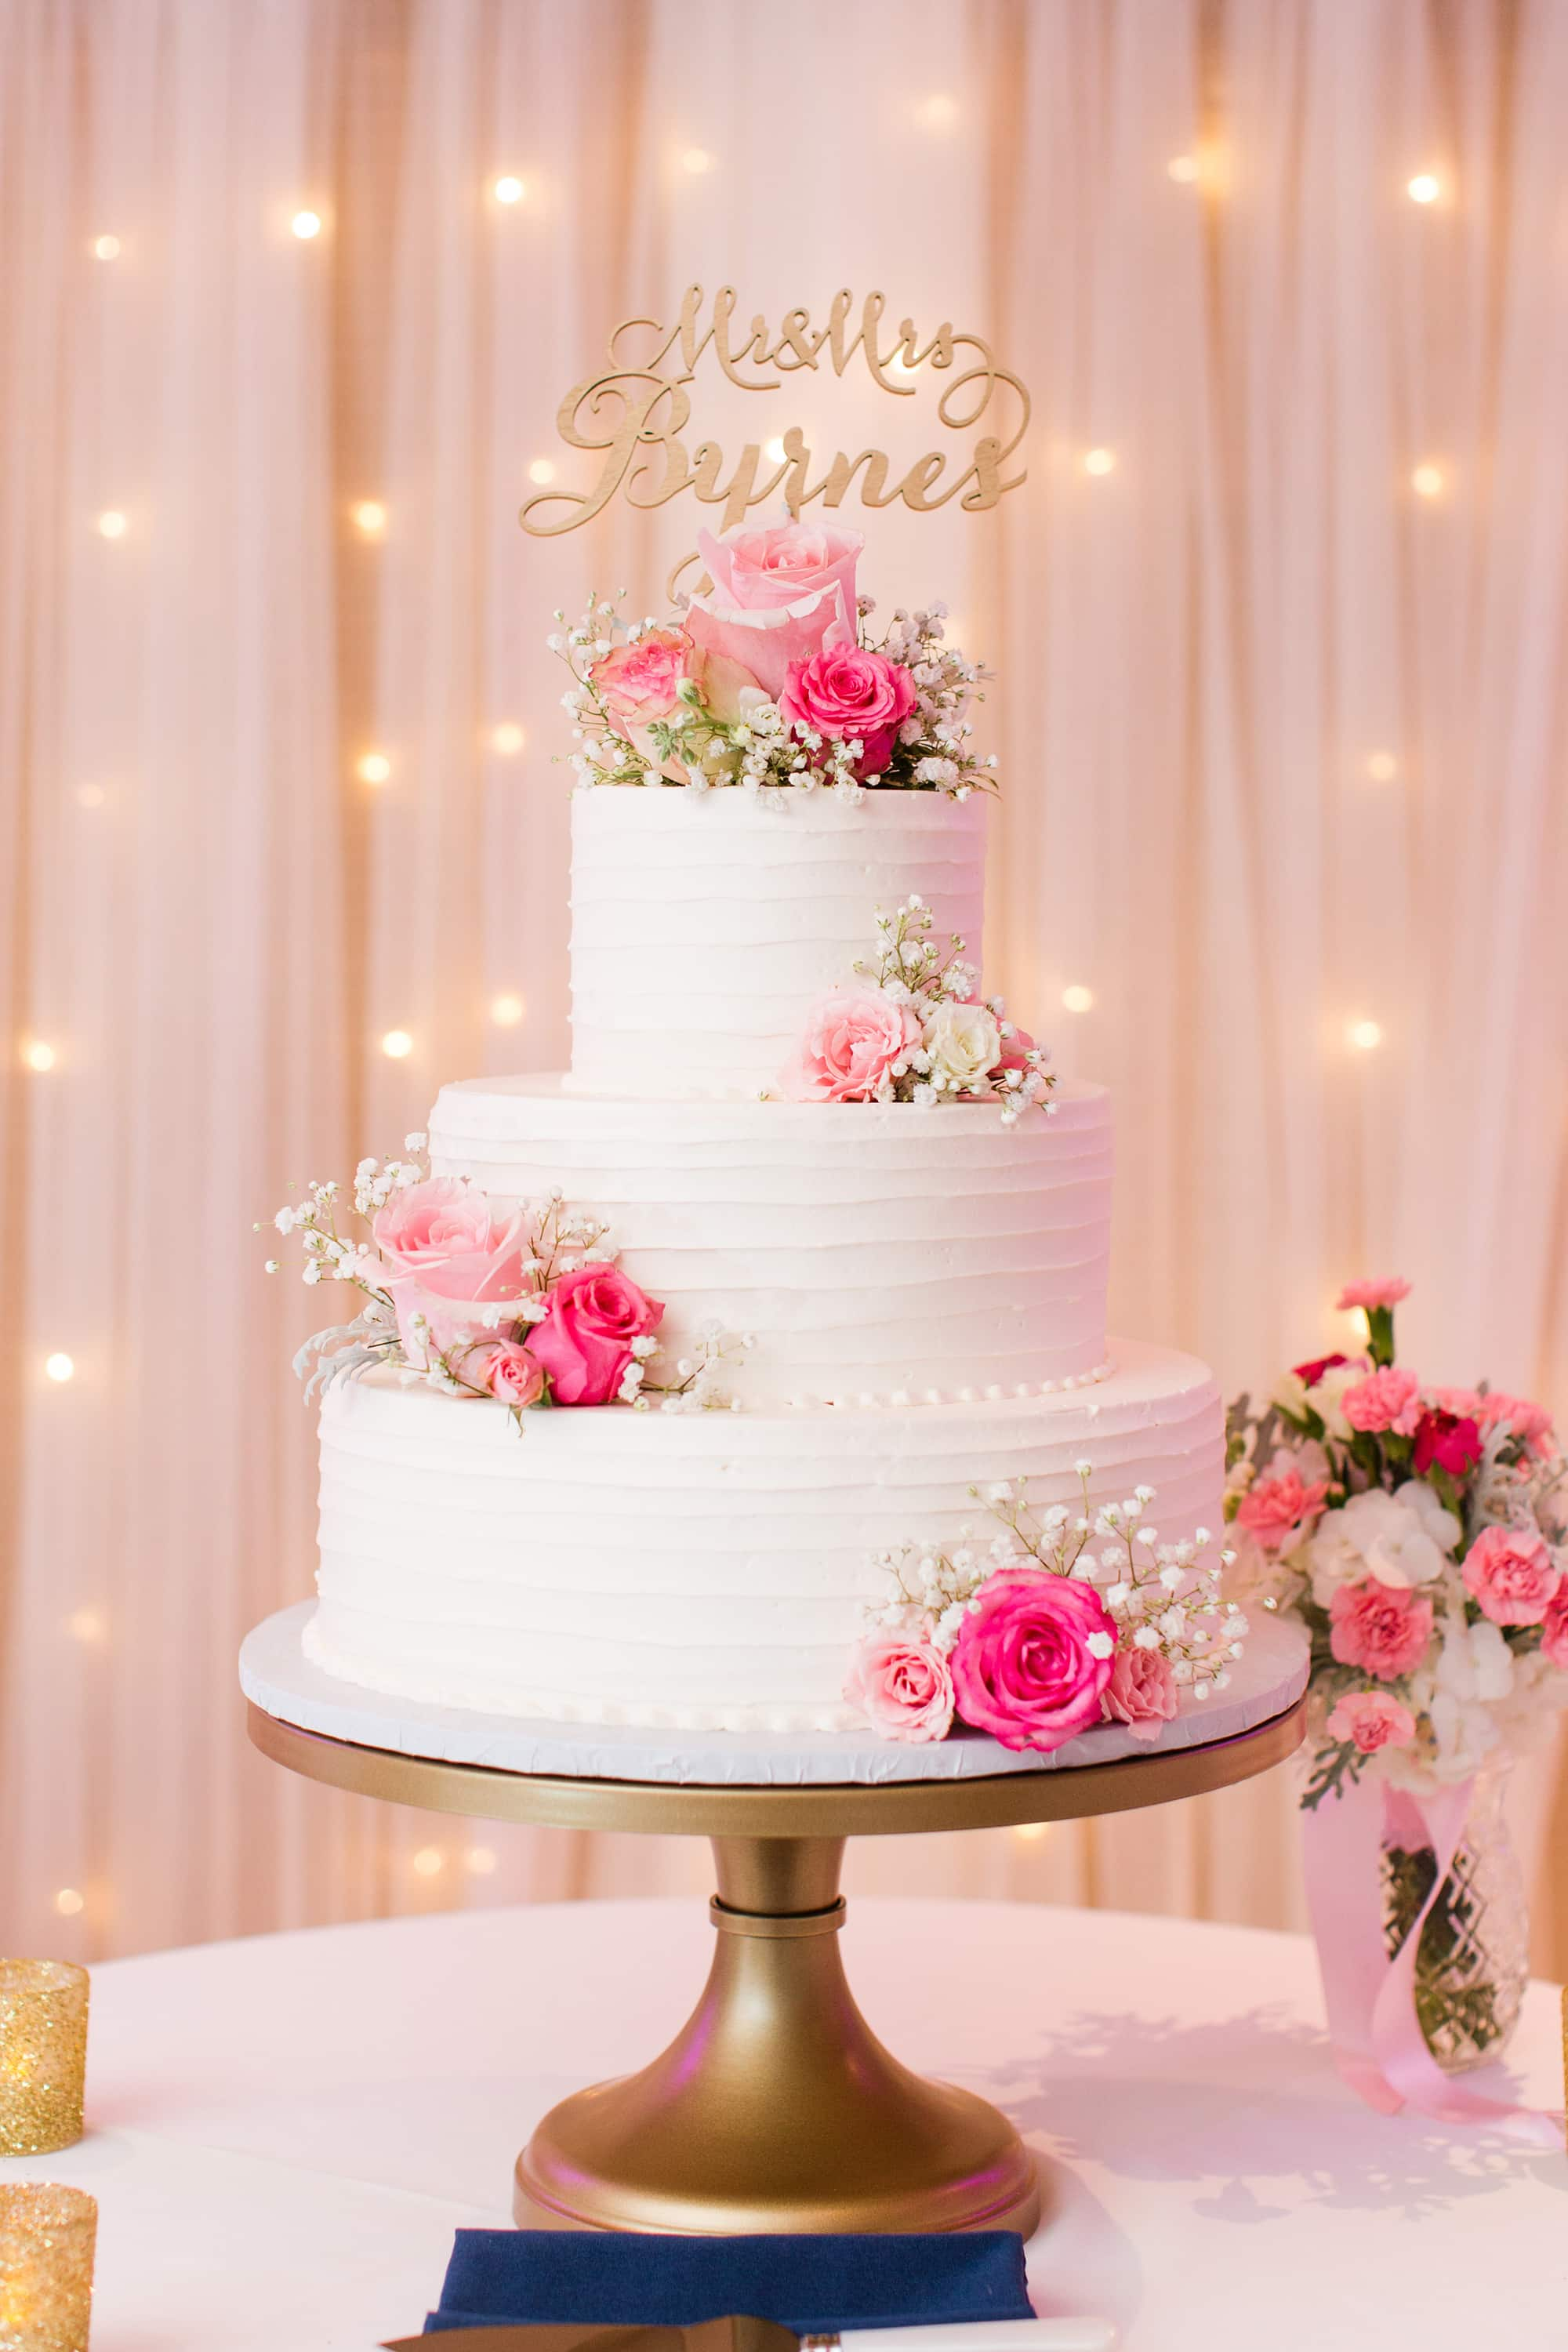 Wedding Cakes | The Chocolate Rose